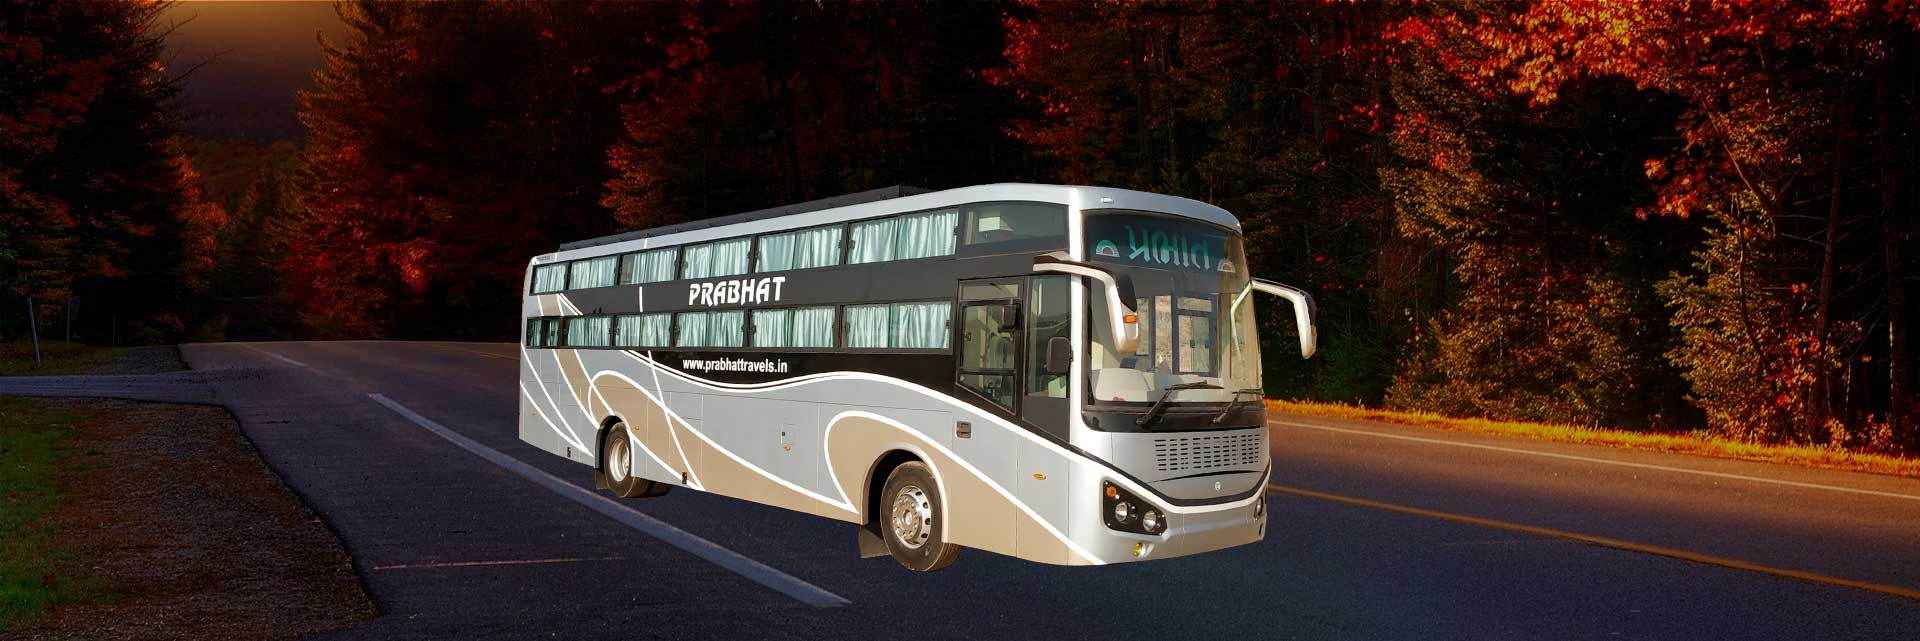 Online Bus Ticket Booking Prabhat Travels